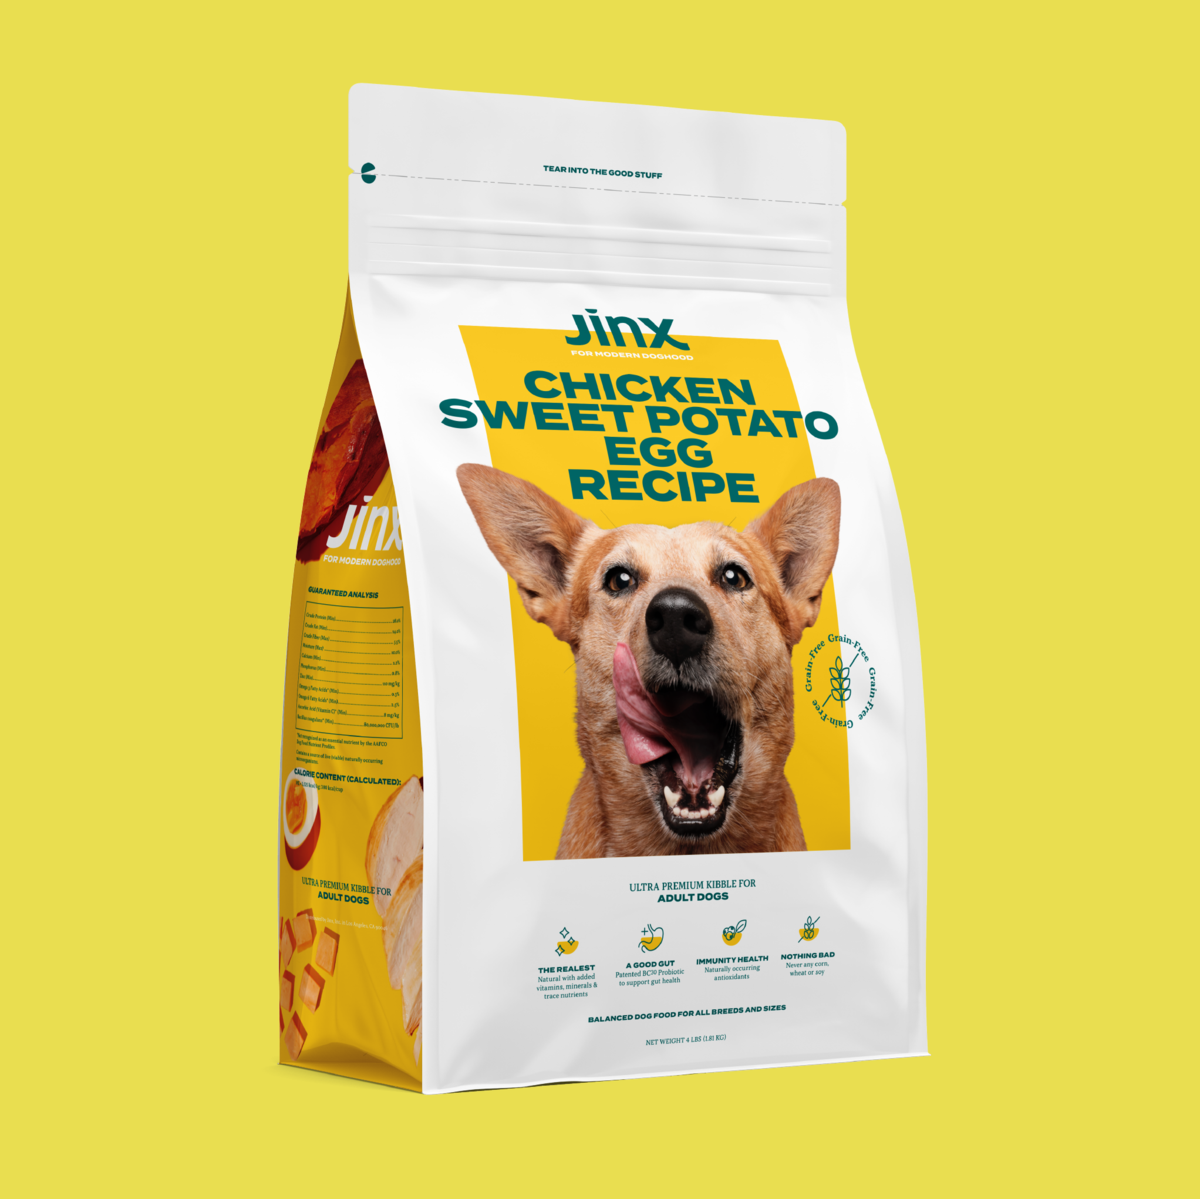 A bag of the sweet potato and egg recipe dog food